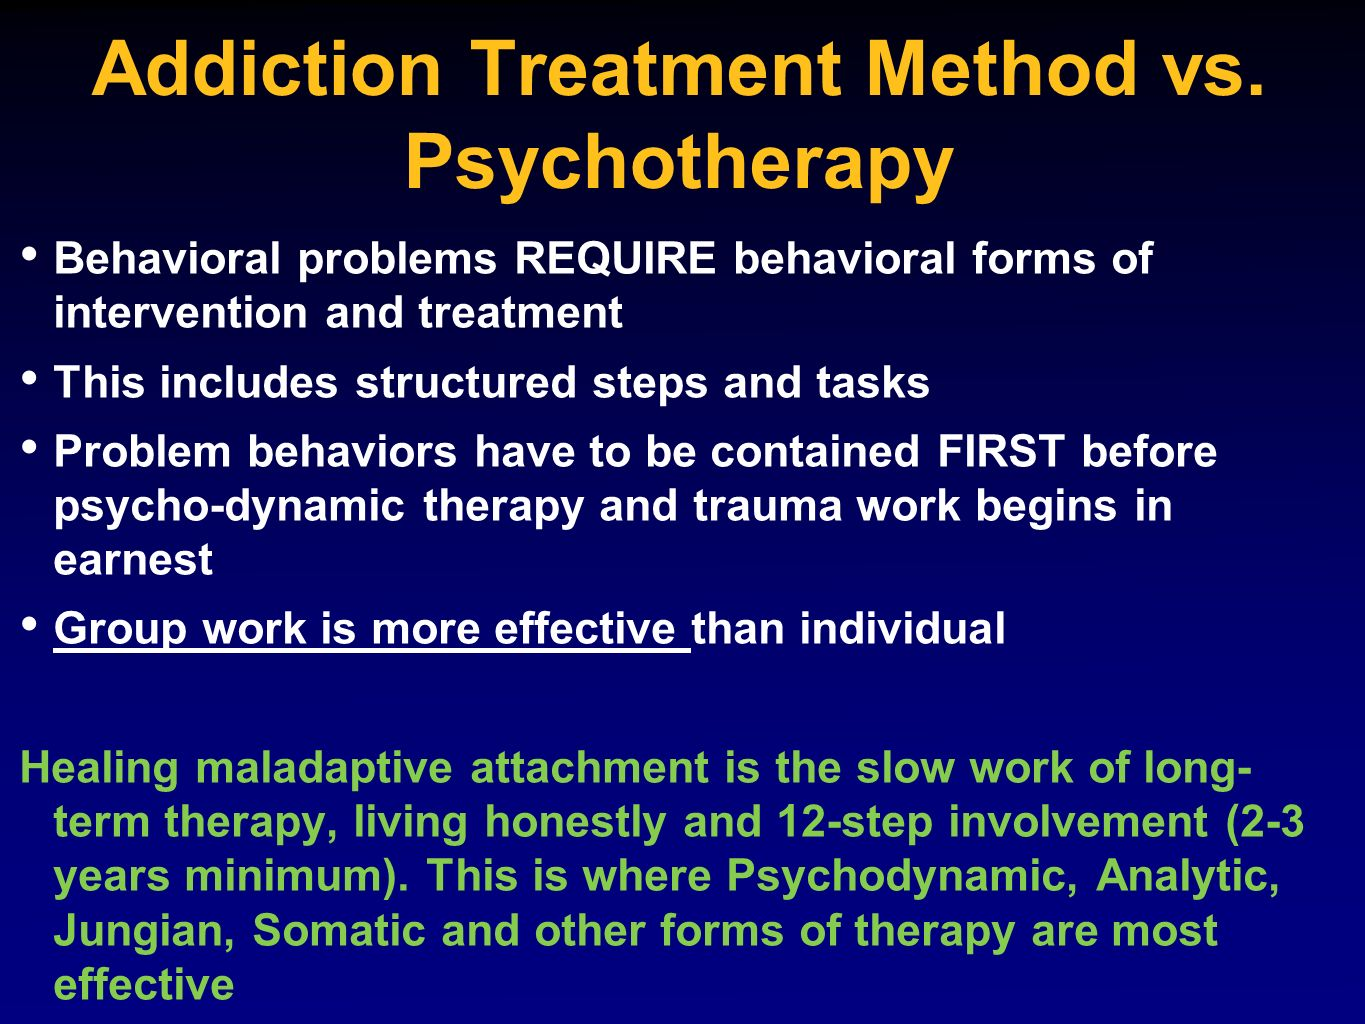 Addiction Treatment Method vs. Psychotherapy